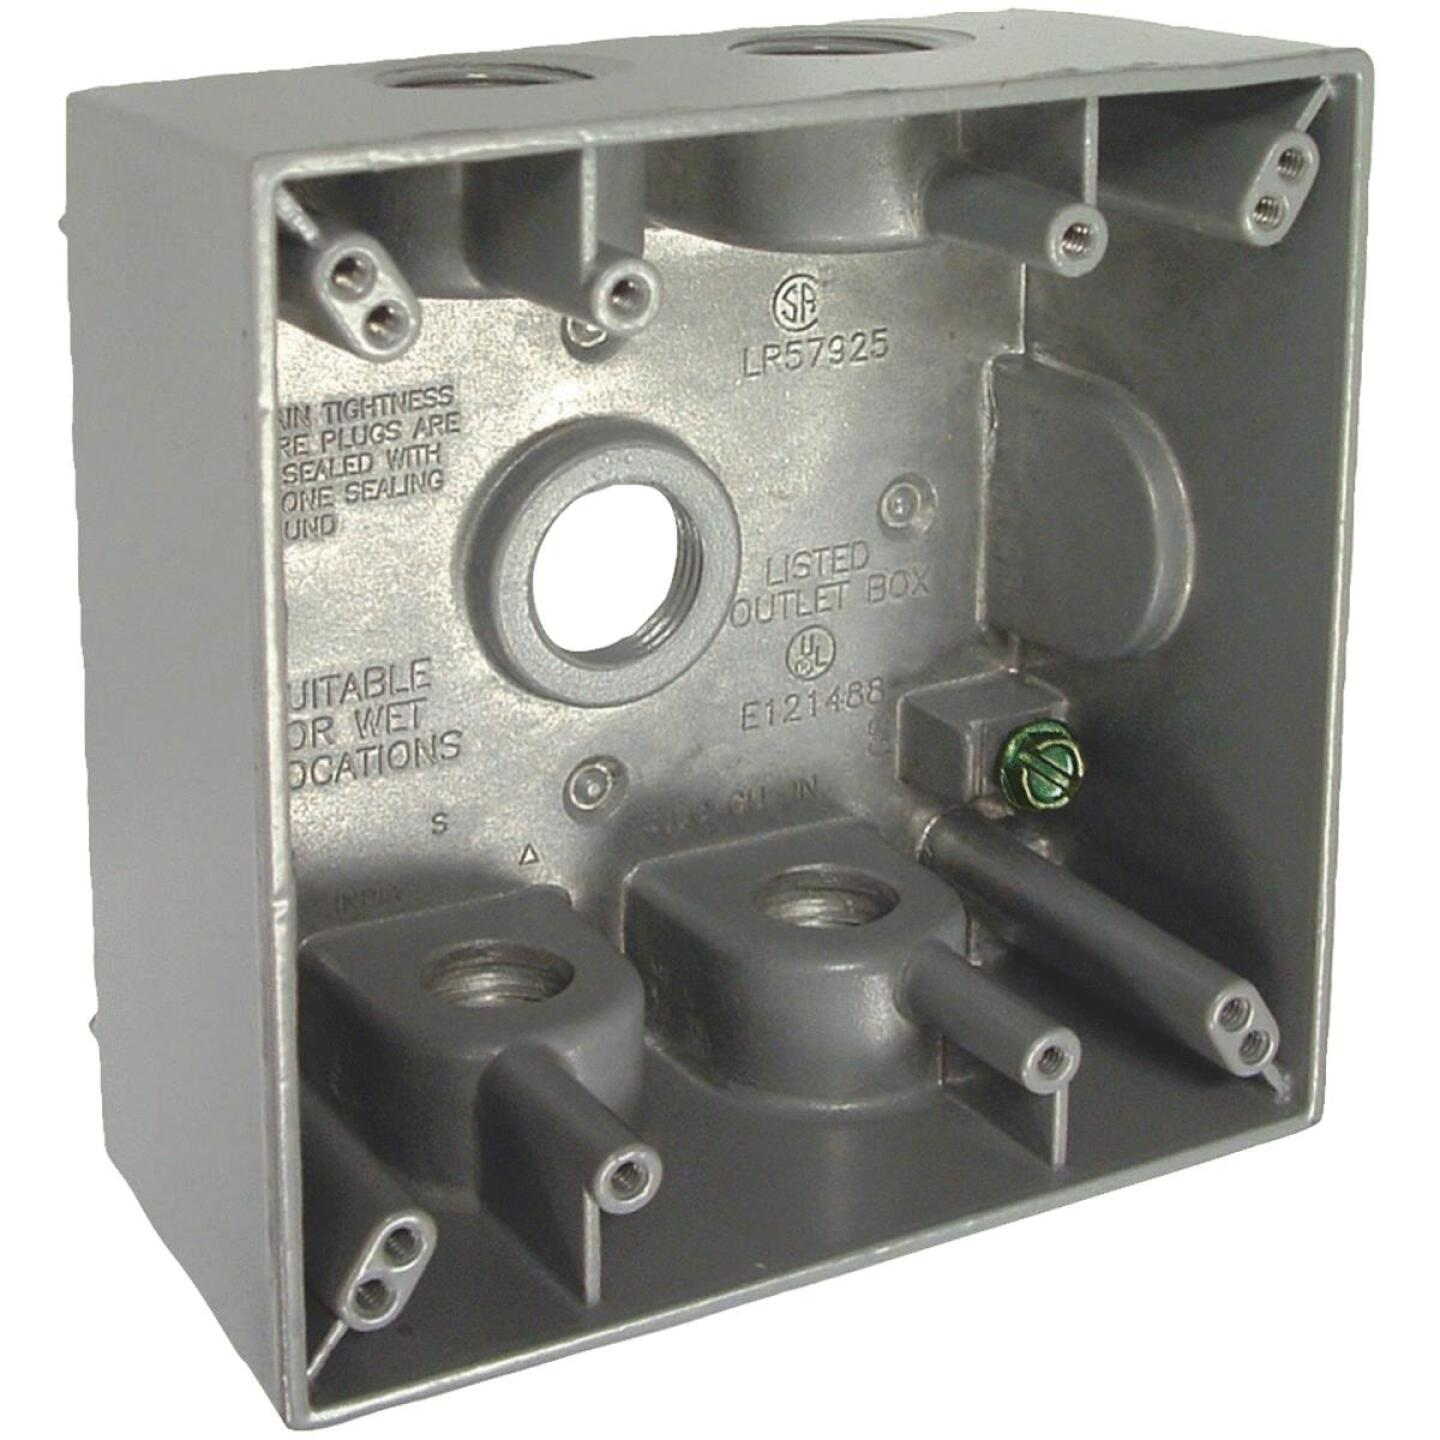 Bell 2-Gang 1/2 In. 5-Outlet Gray Aluminum Weatherproof Outdoor Outlet Box, Carded Image 1